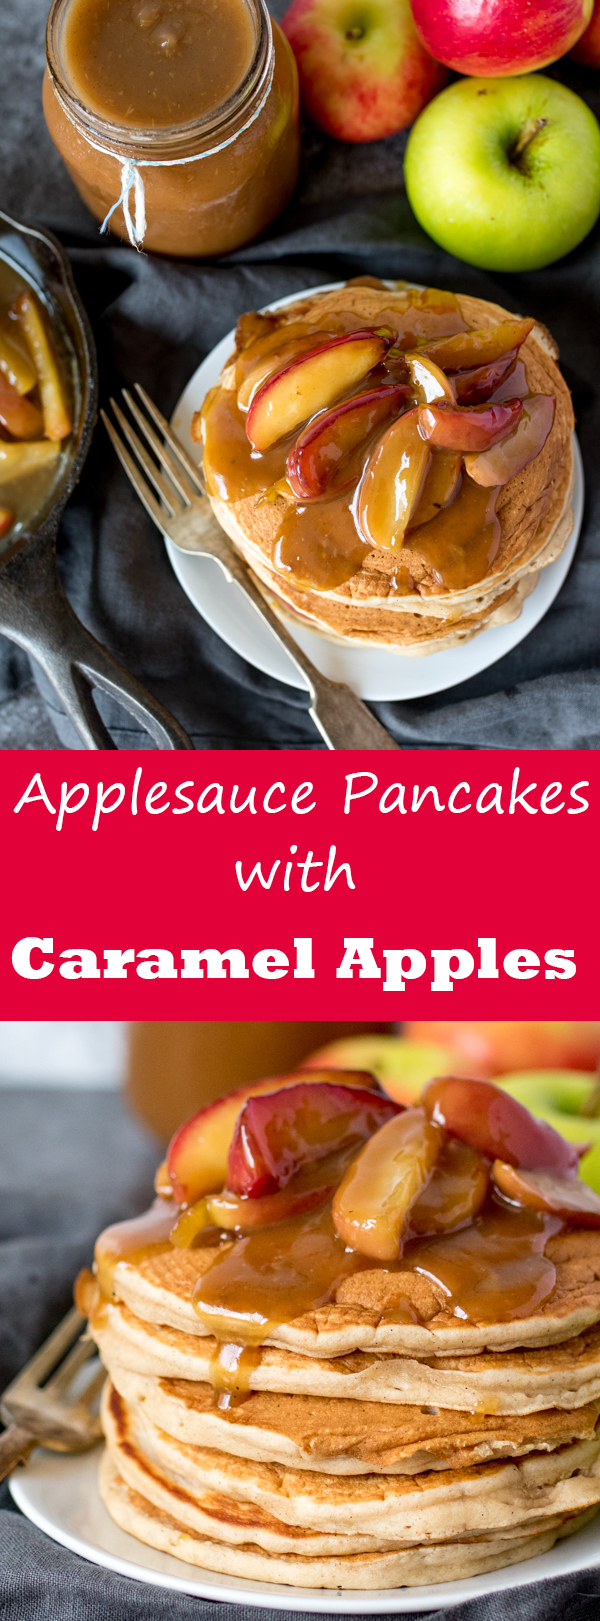 applesauce pancakes pin